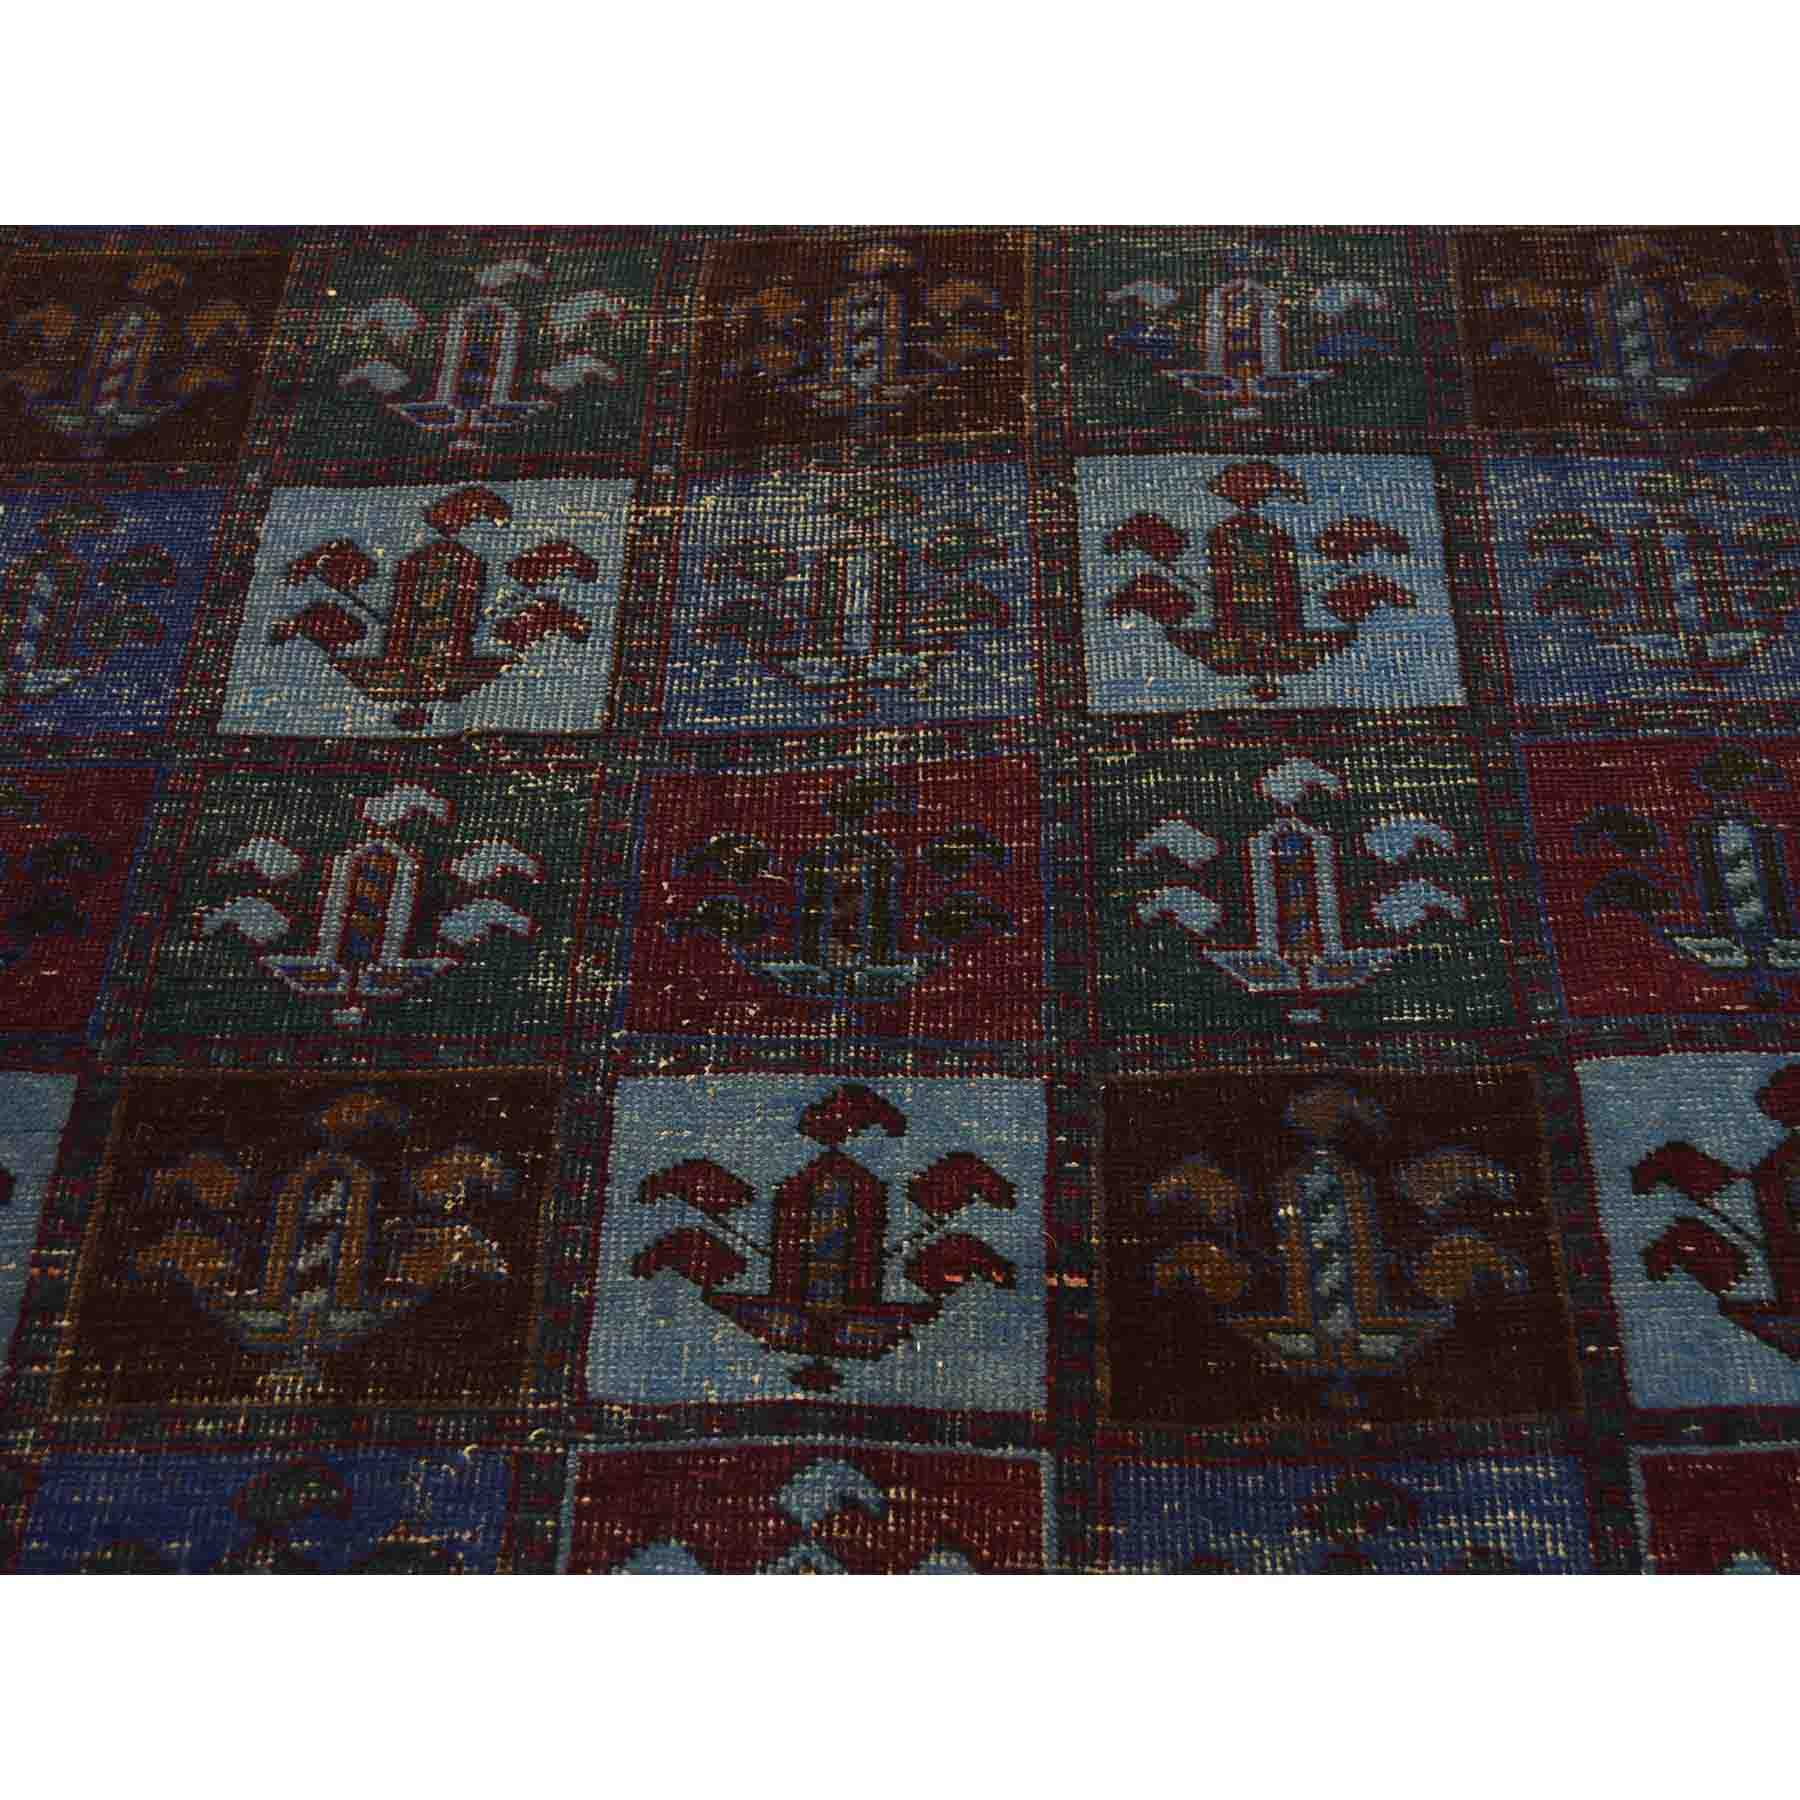 Overdyed-Vintage-Hand-Knotted-Rug-192715